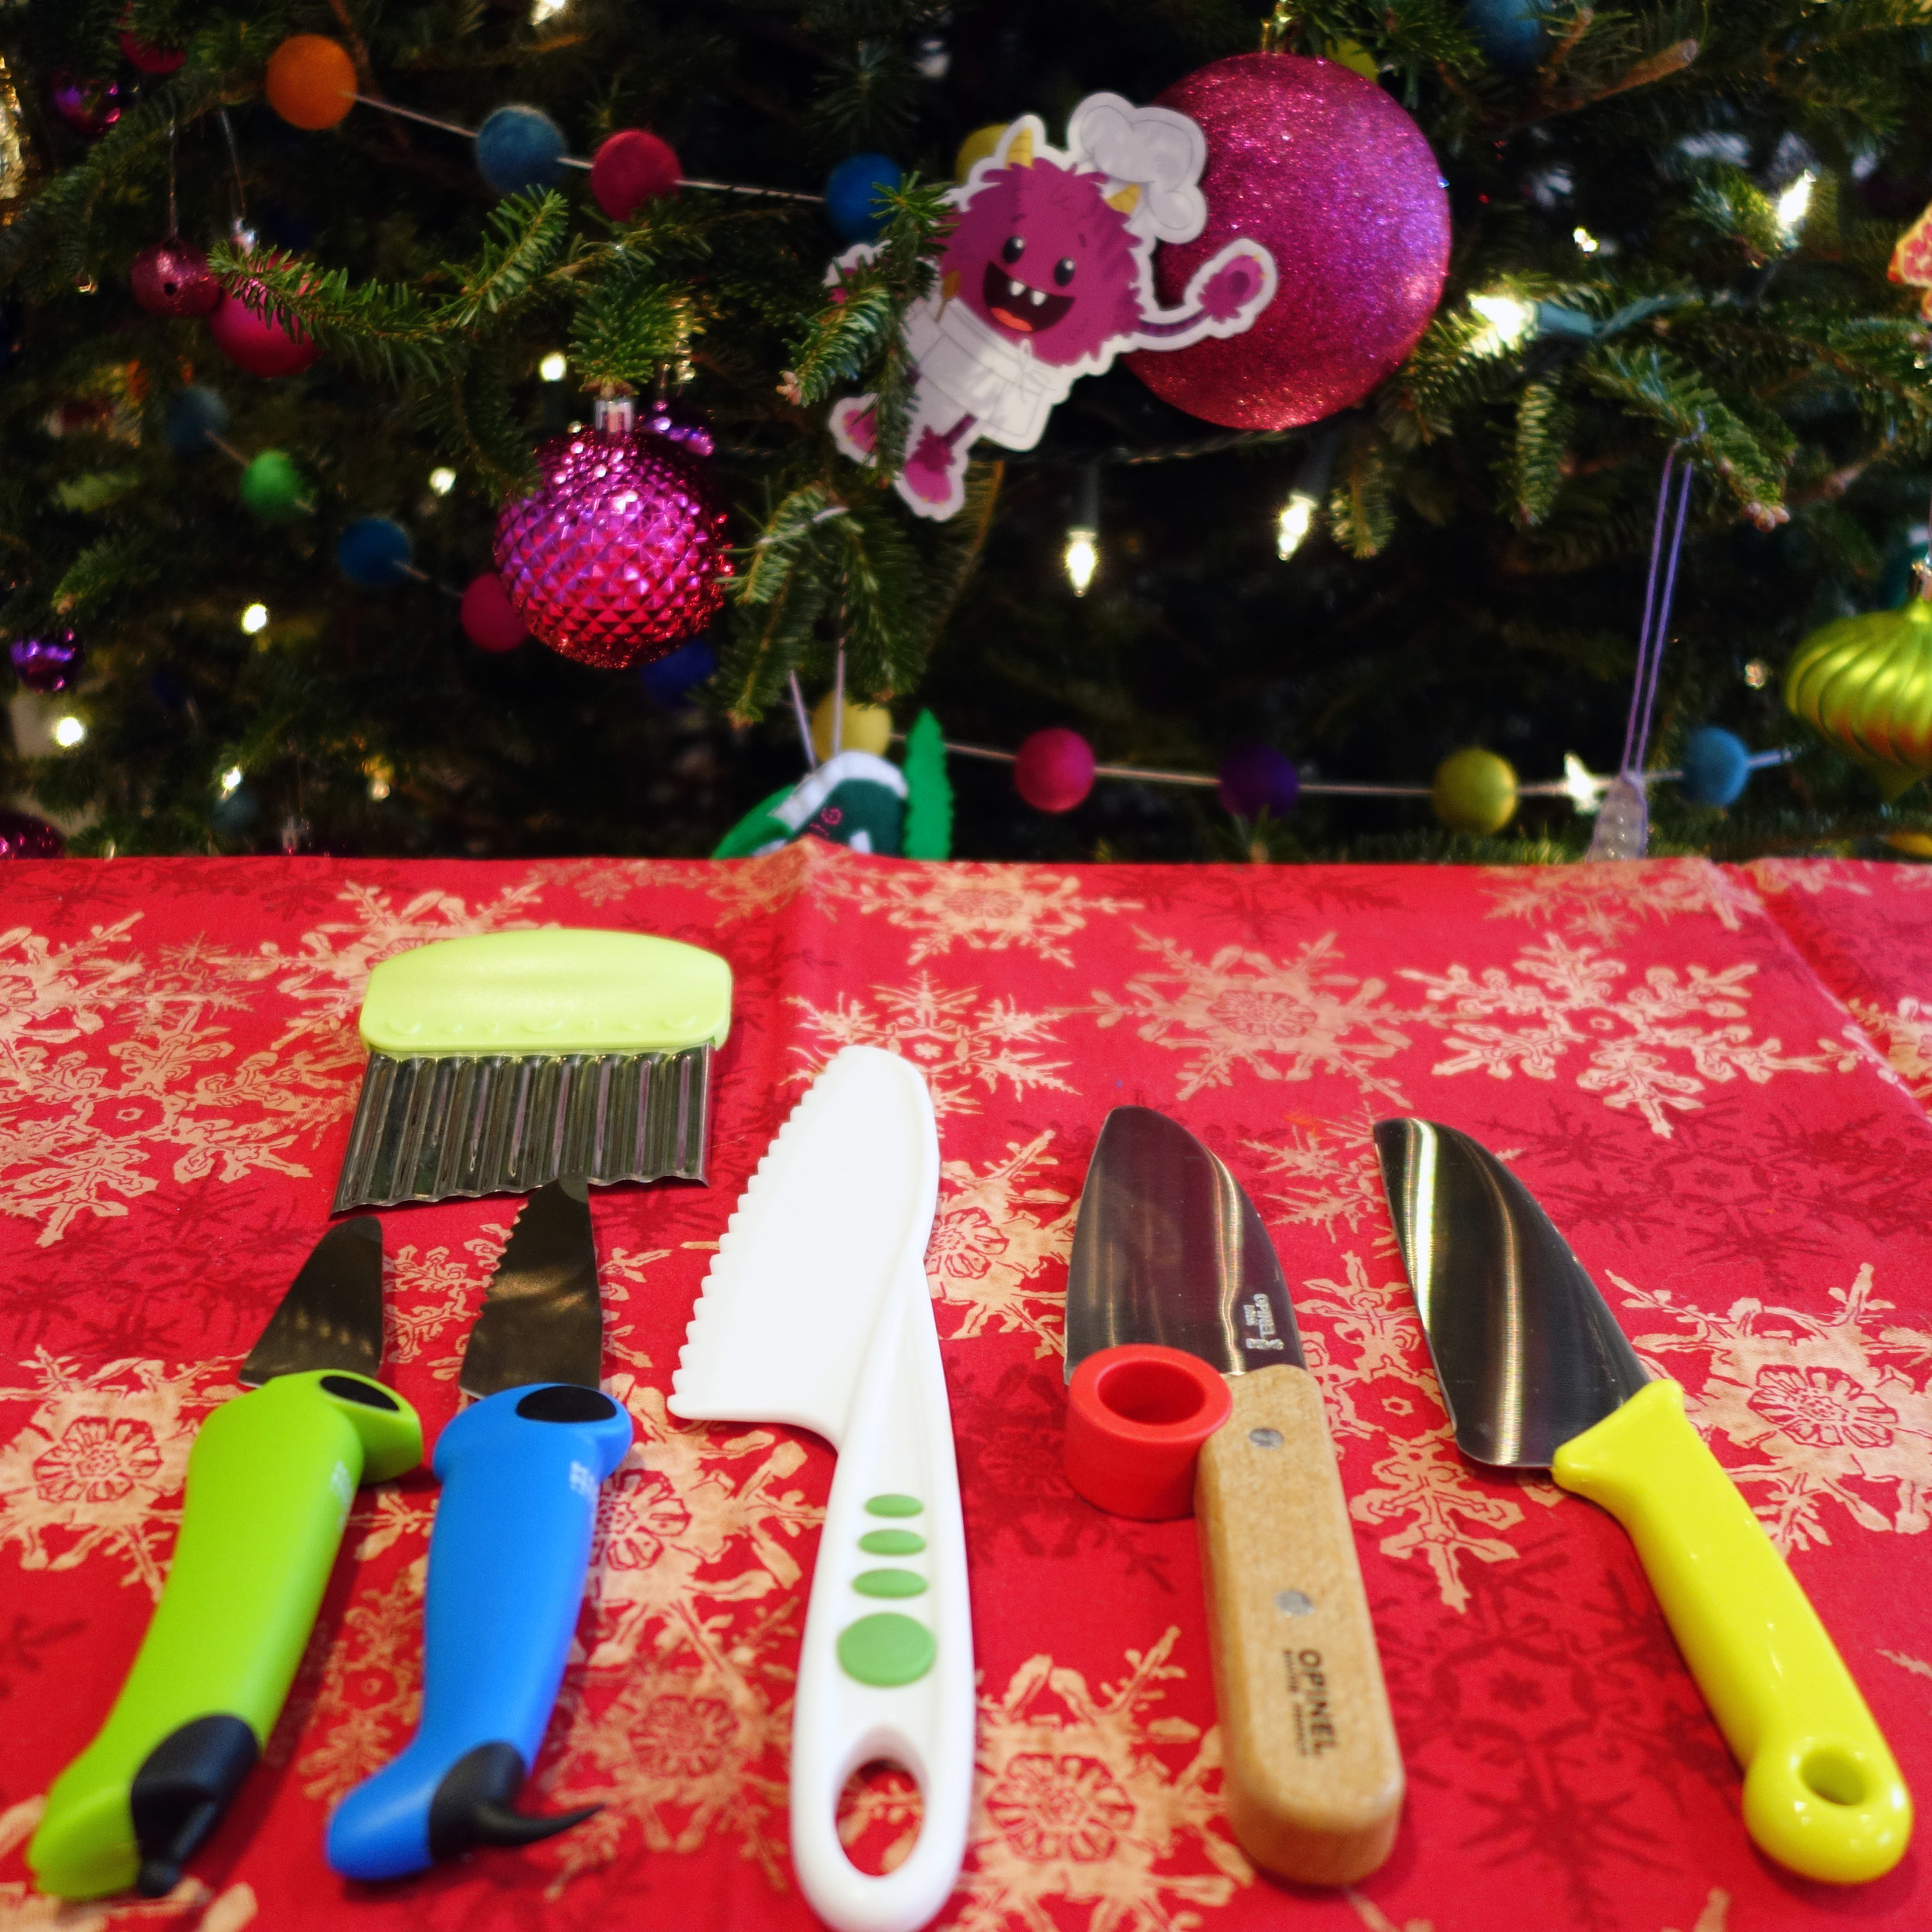 Gift guide for kids who like to cook - knives for kid chefs